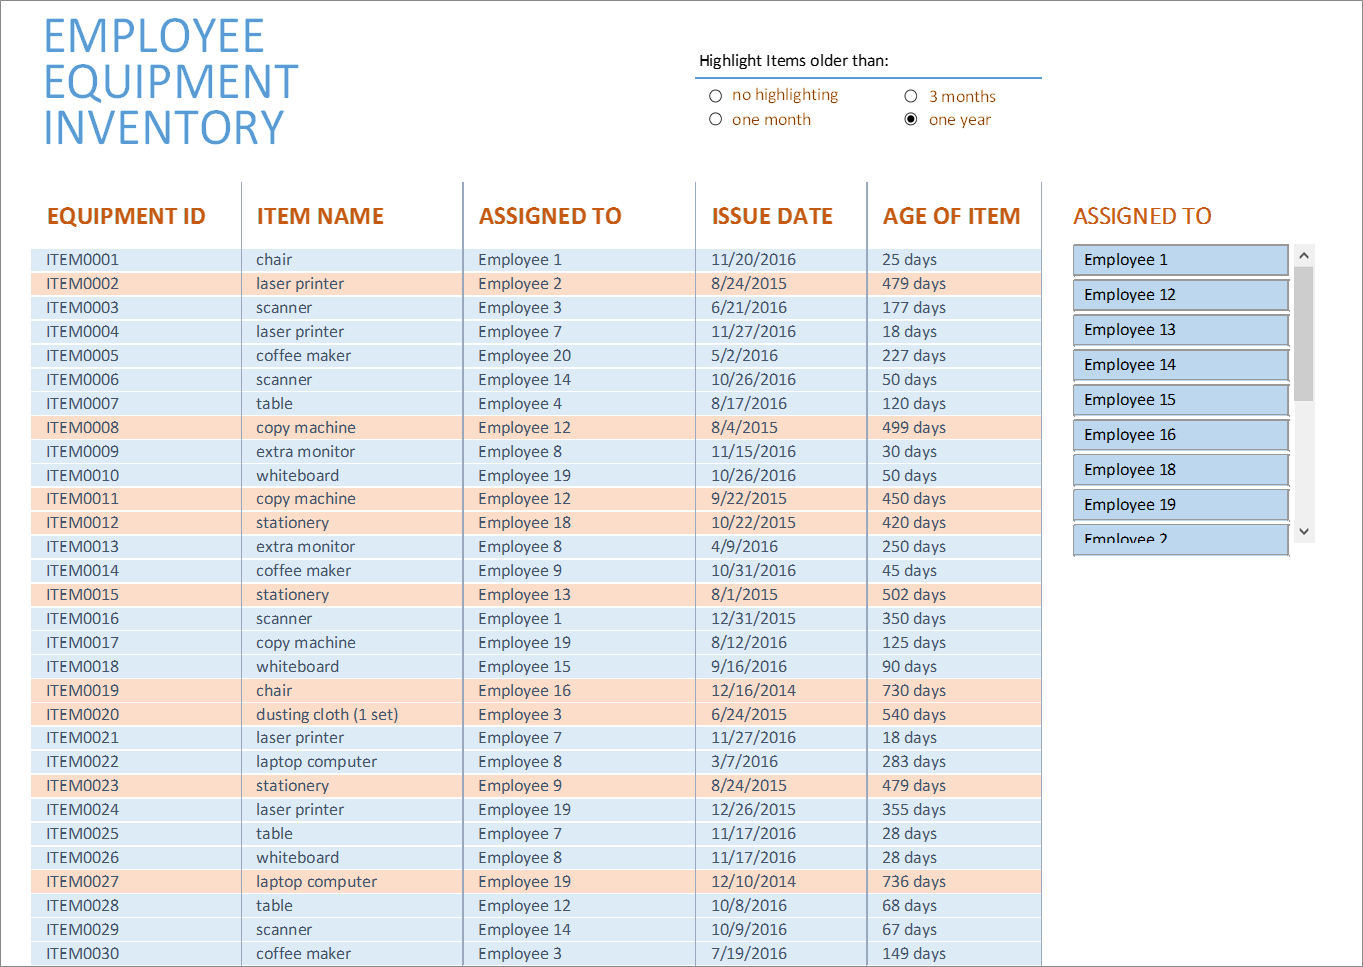 Equipment Inventory List Excel